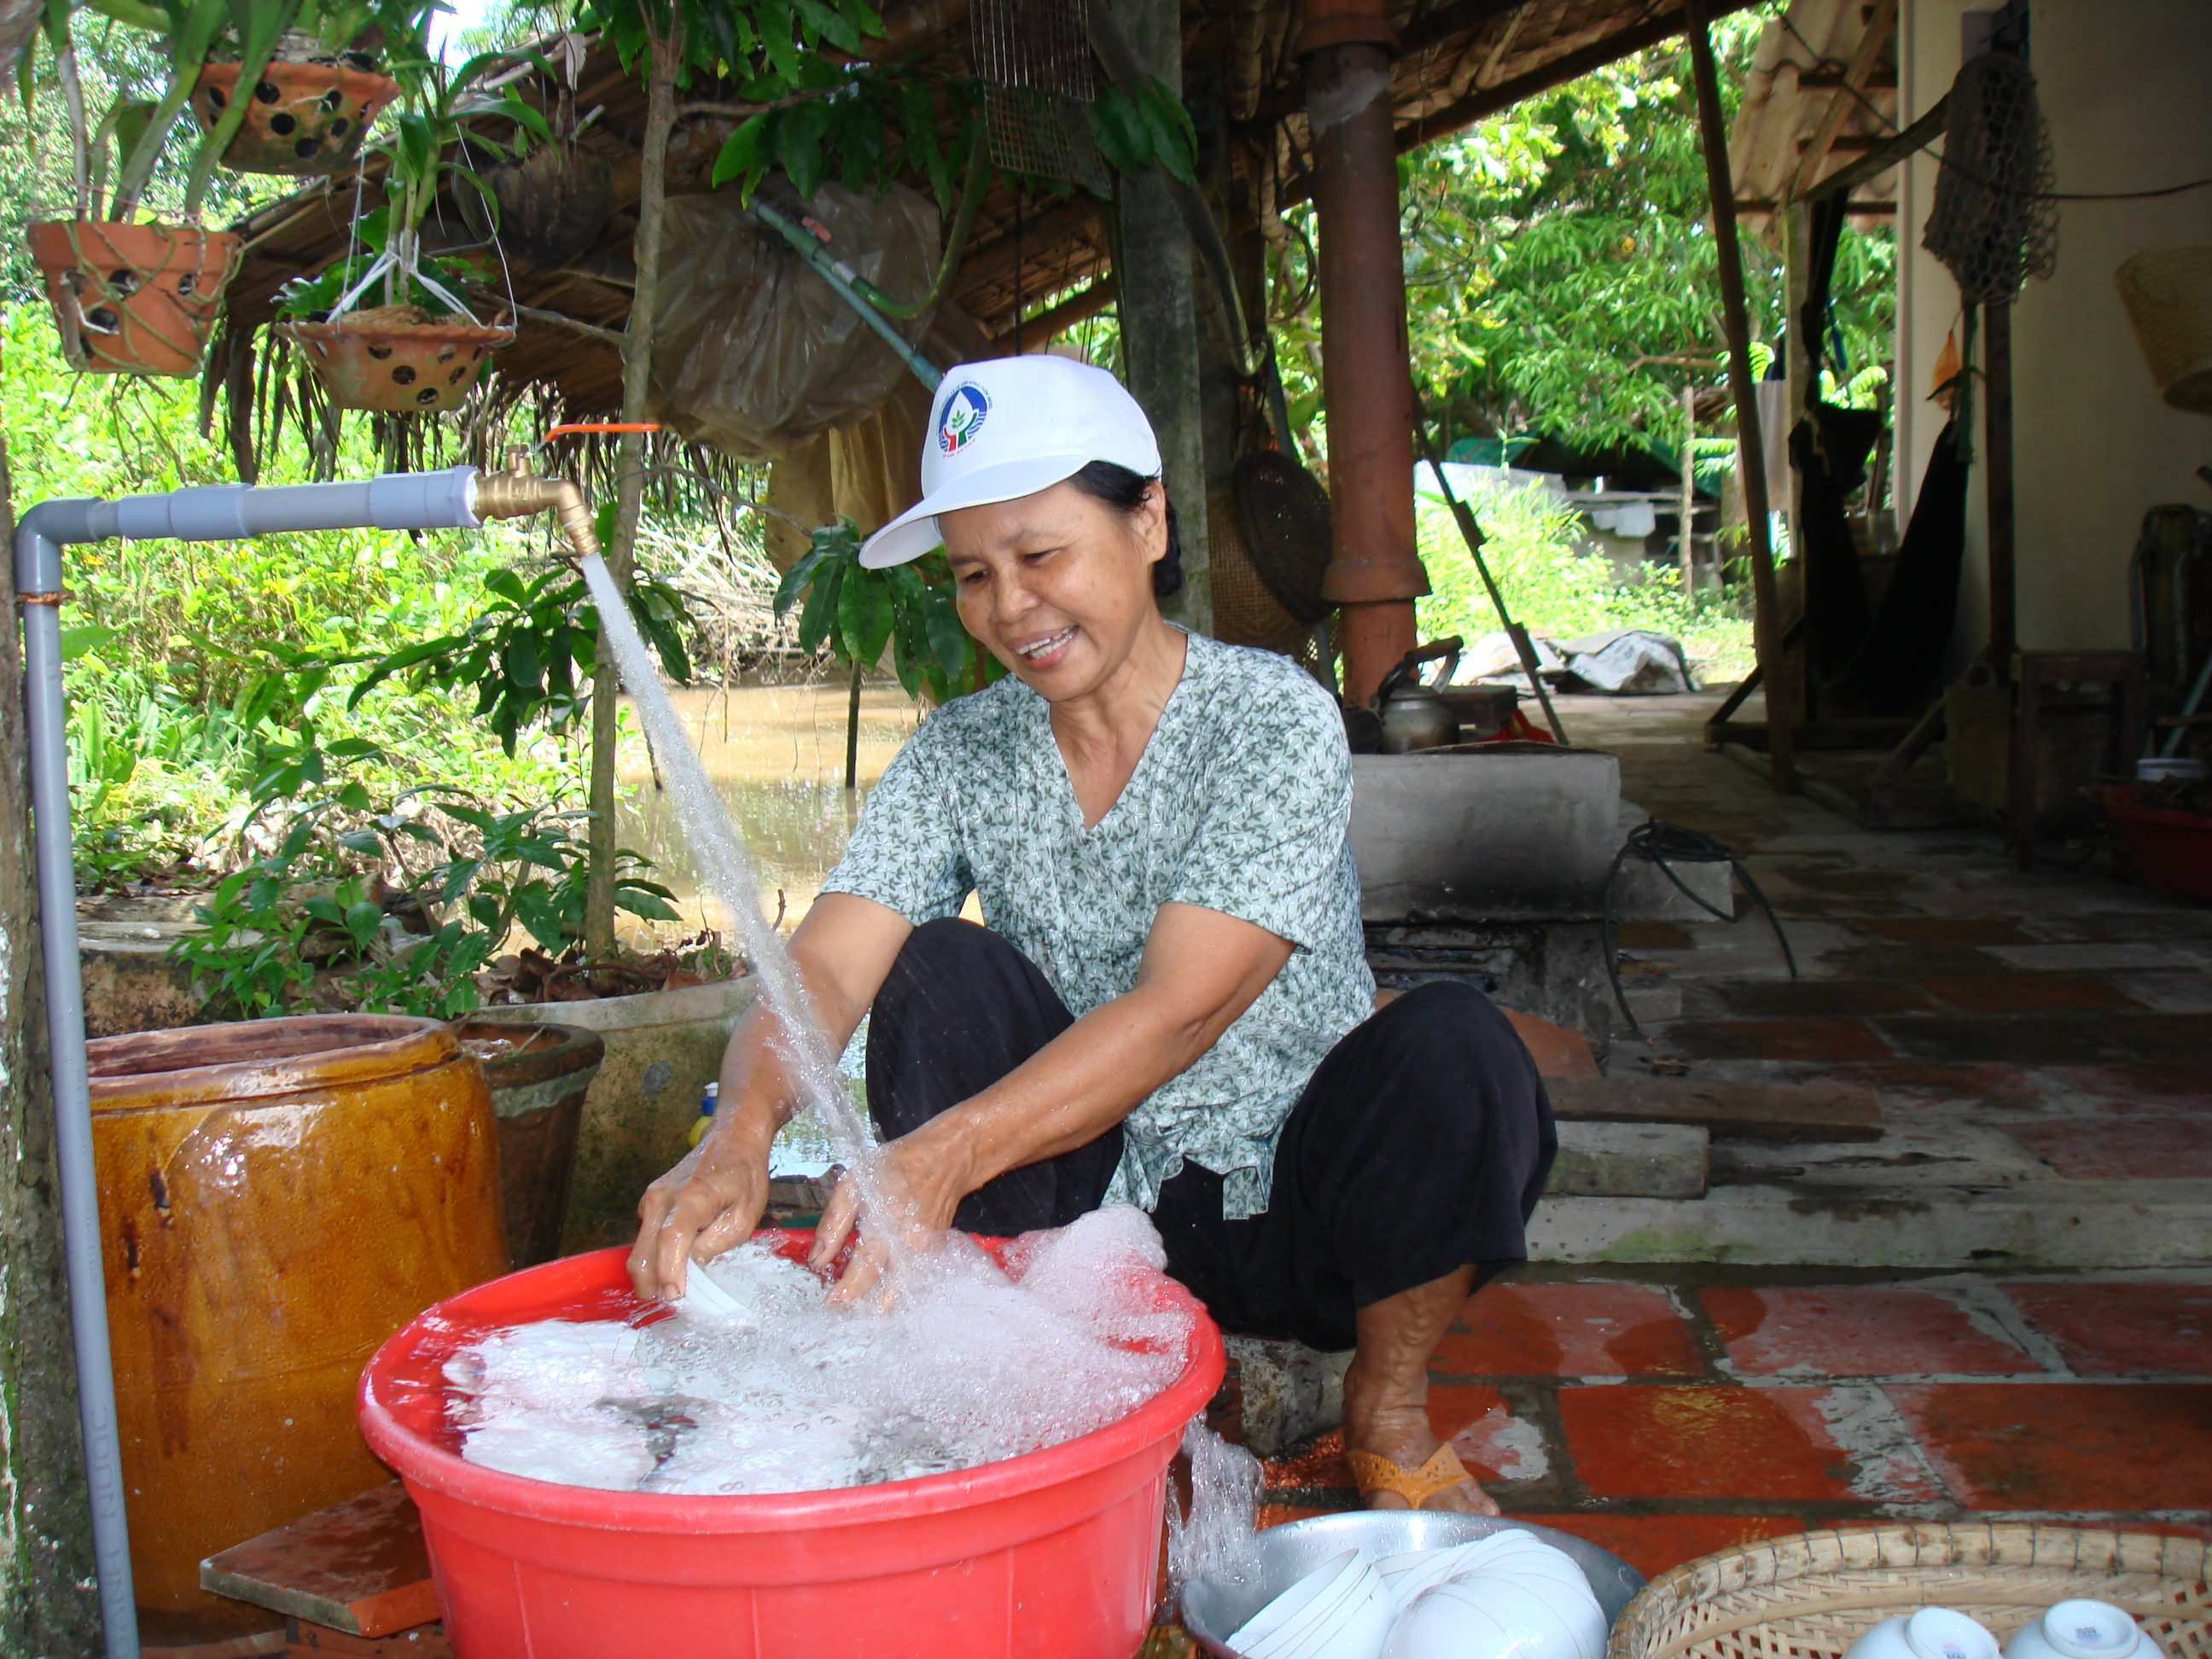 Clean running water in homes improves health and reduces work in Vietnam. Photo courtesy of Coffey International Development